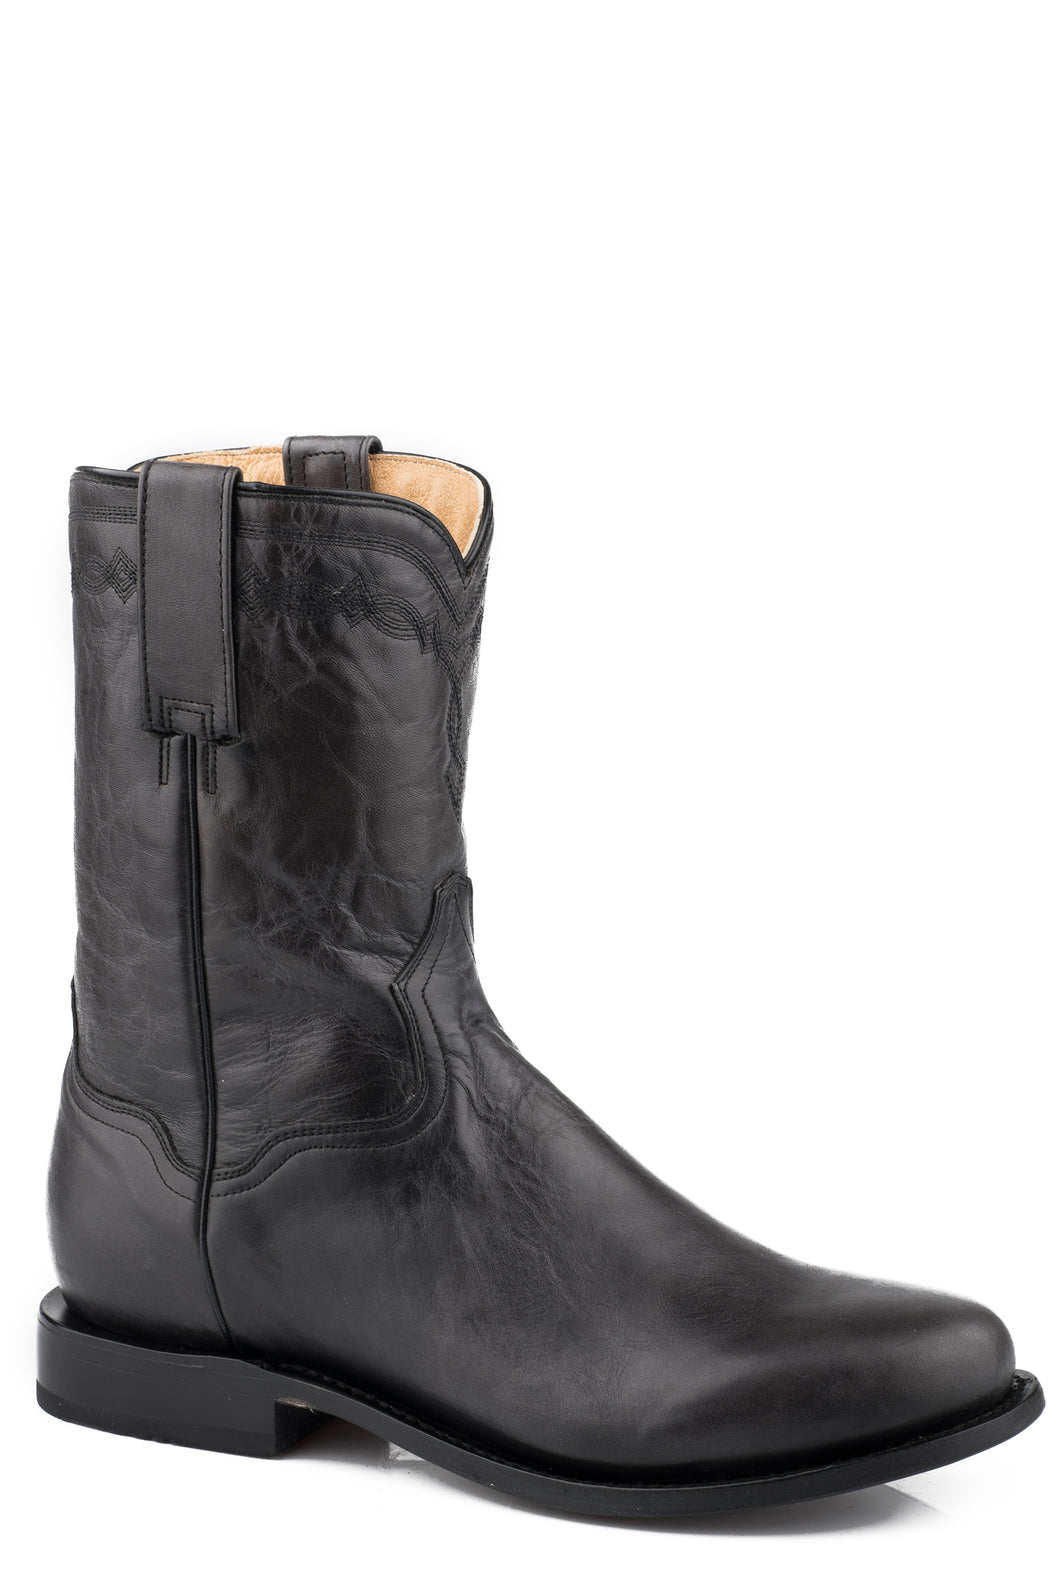 Roderick Boot Mens Boots Shiny Black All Over Leather